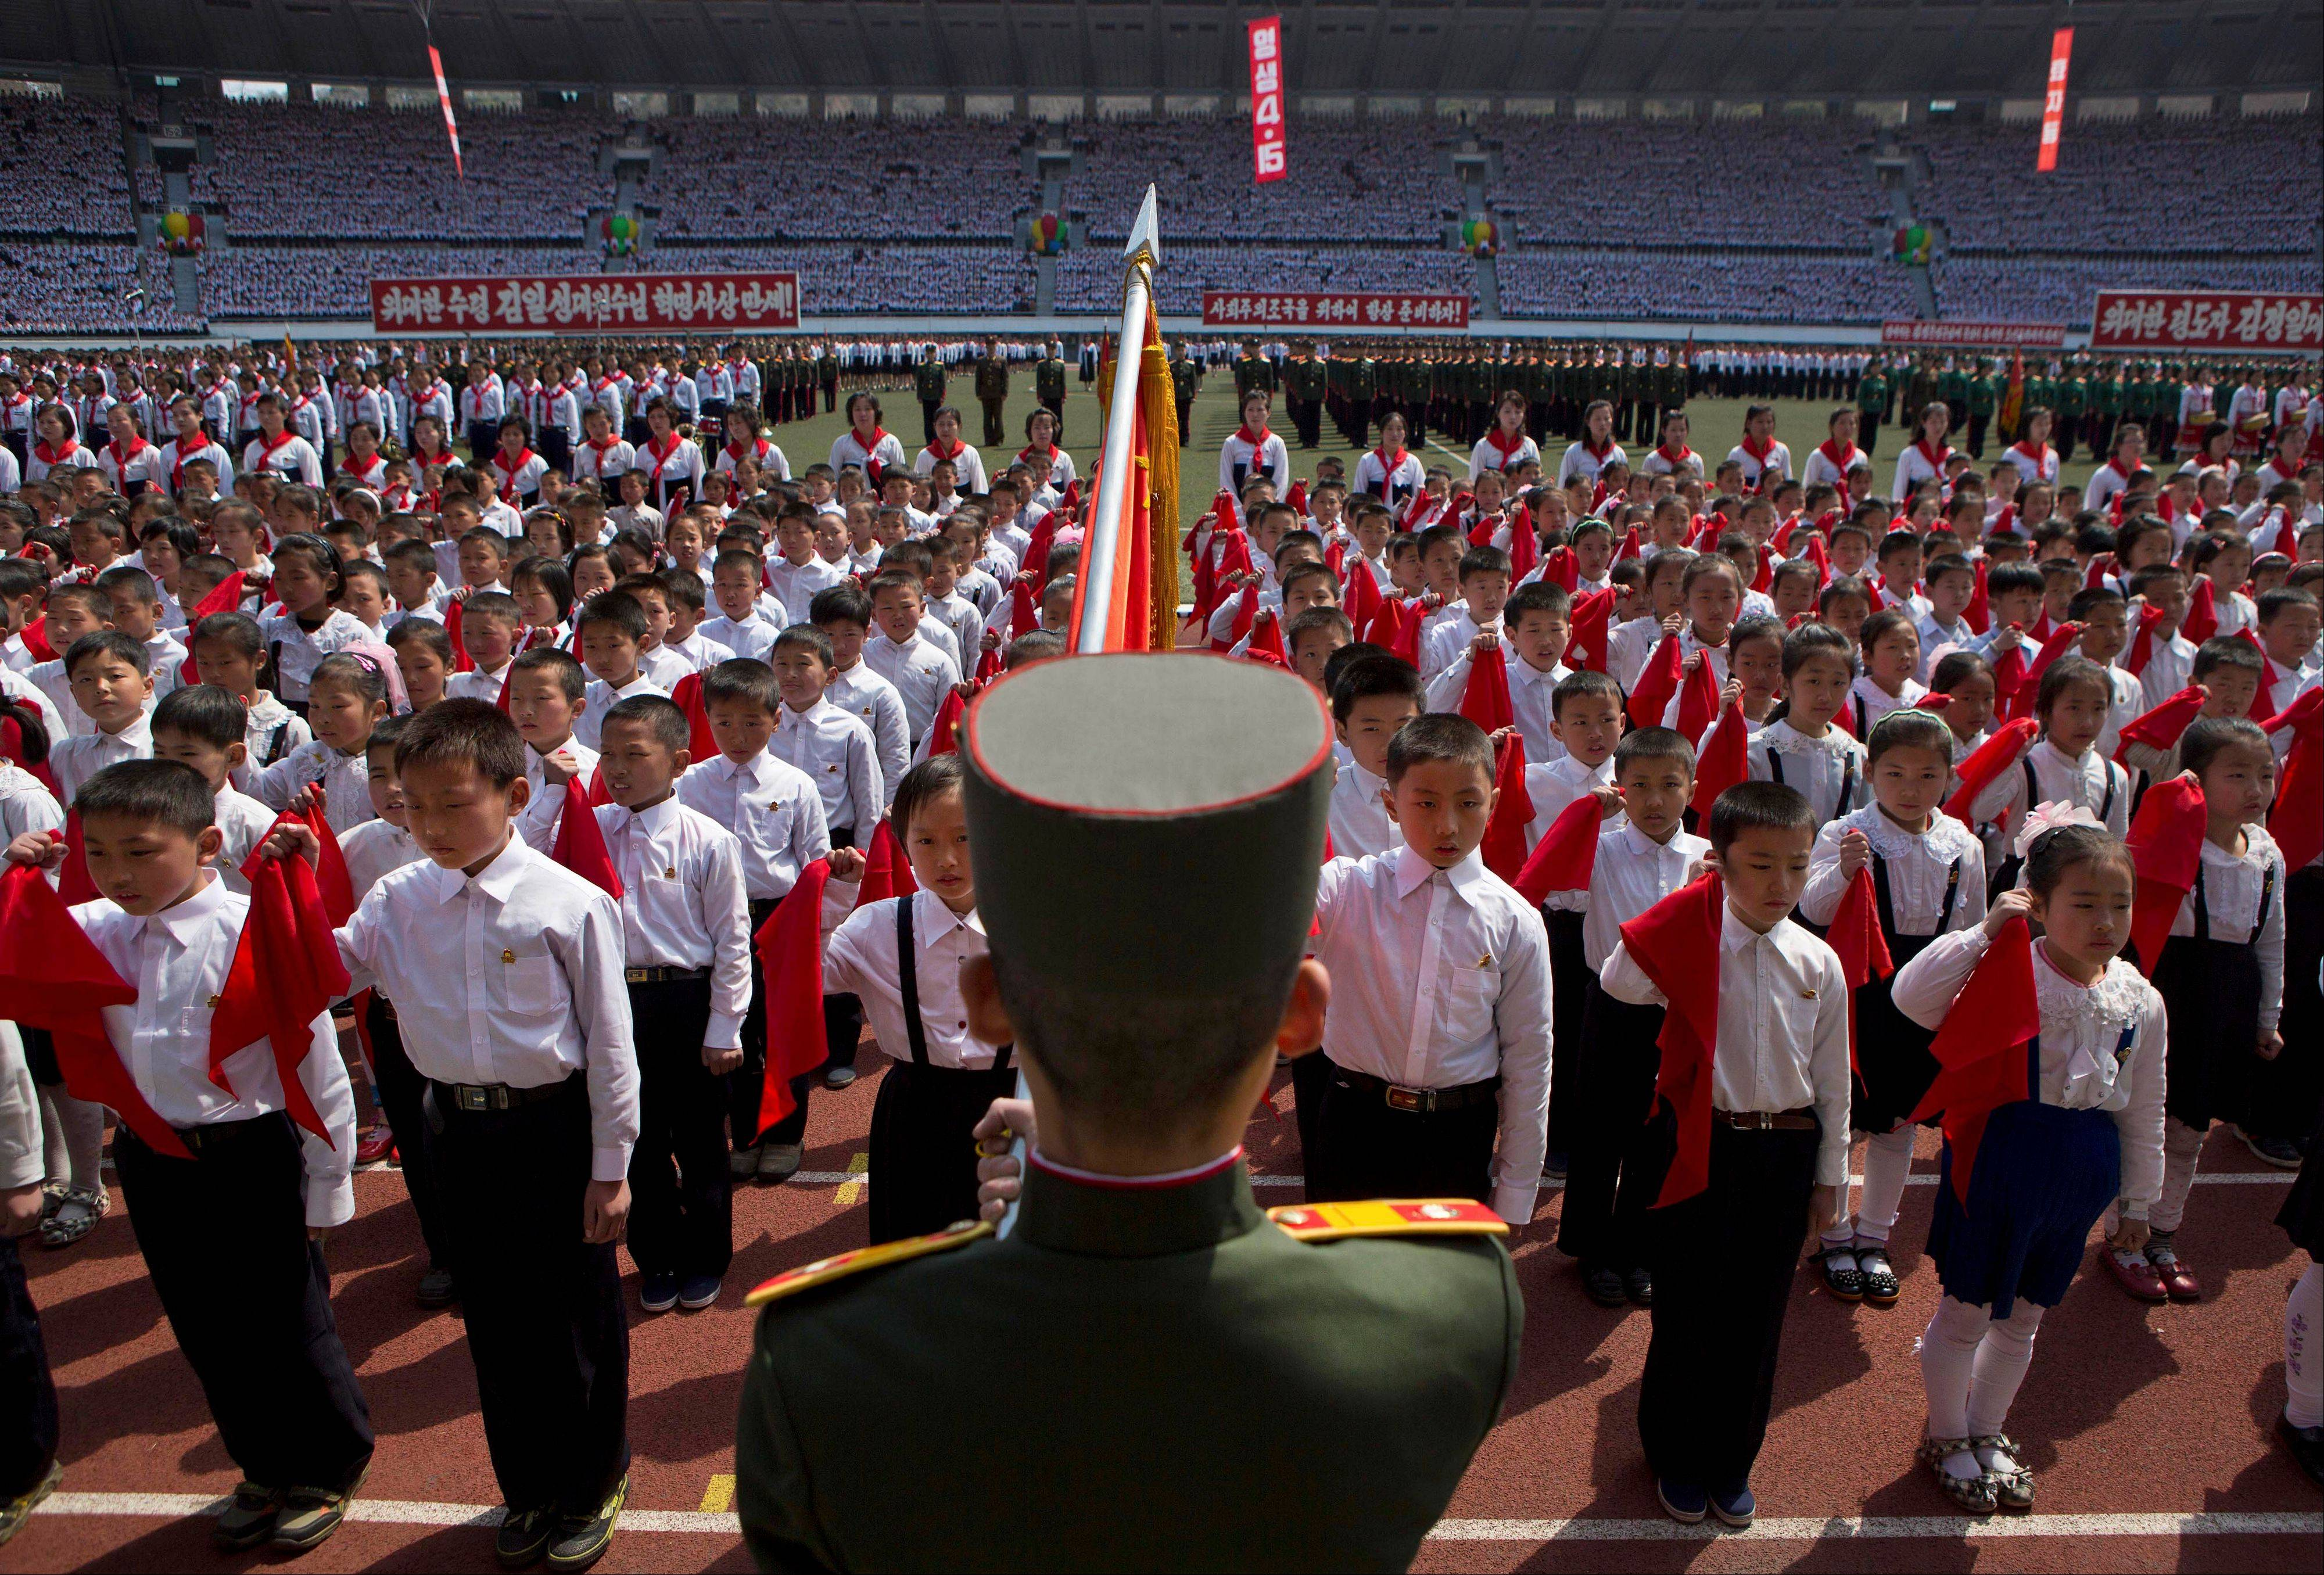 North Korean children hold up red scarves to be tied around their necks during an induction ceremony into the Korean Children�s Union, the first political organization for North Koreans, held at a stadium in Pyongyang on Friday, April 12, 2013.